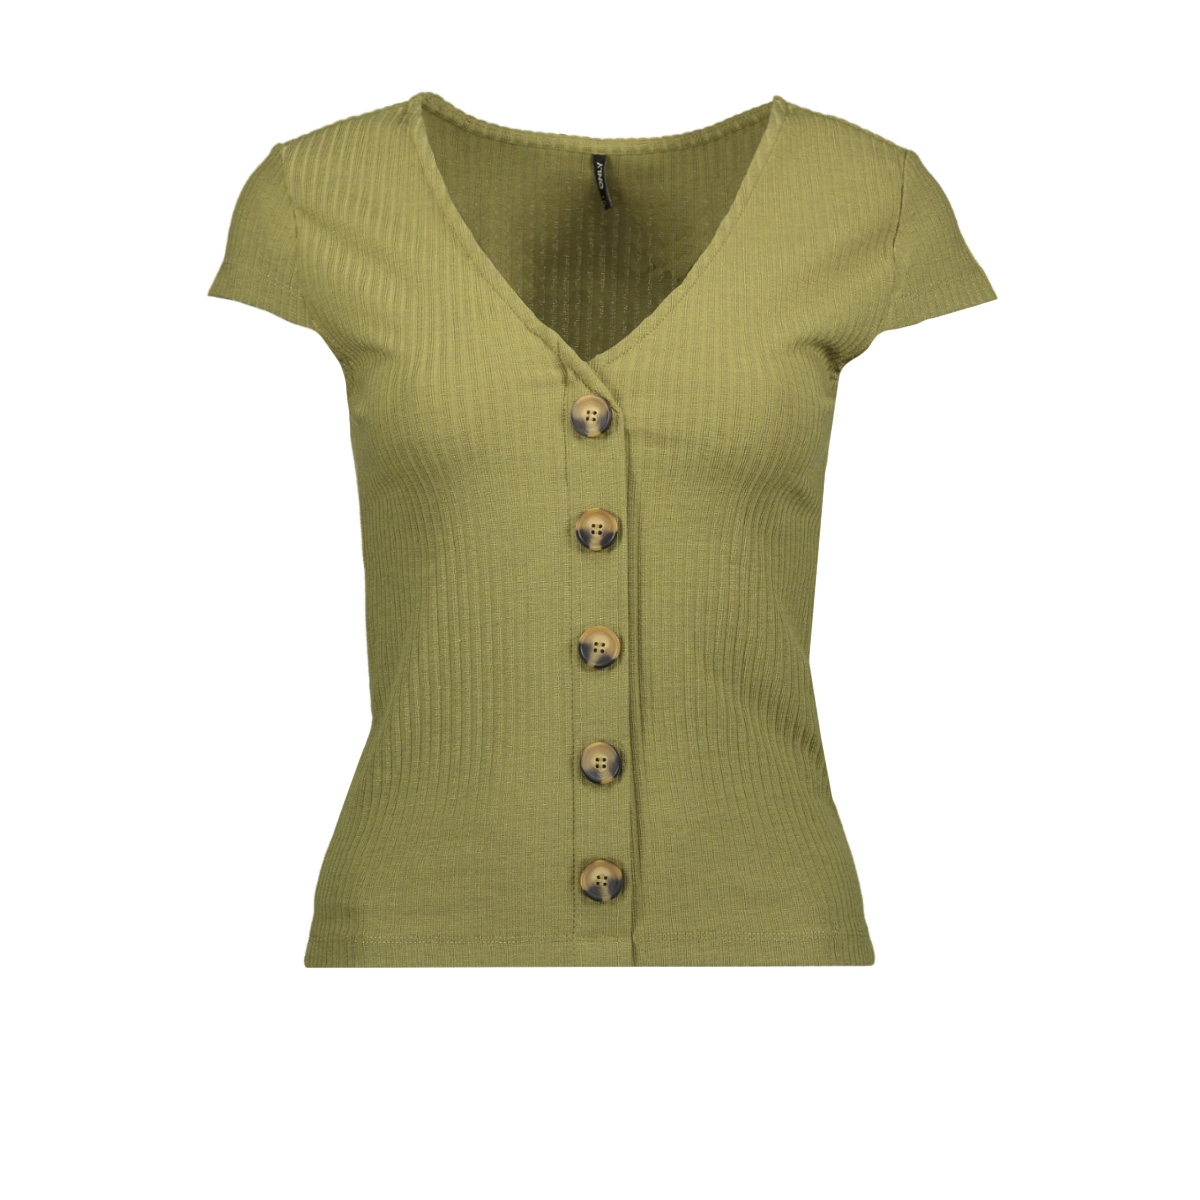 onlnella s/s button top jrs 15181030 only t-shirt martini olive